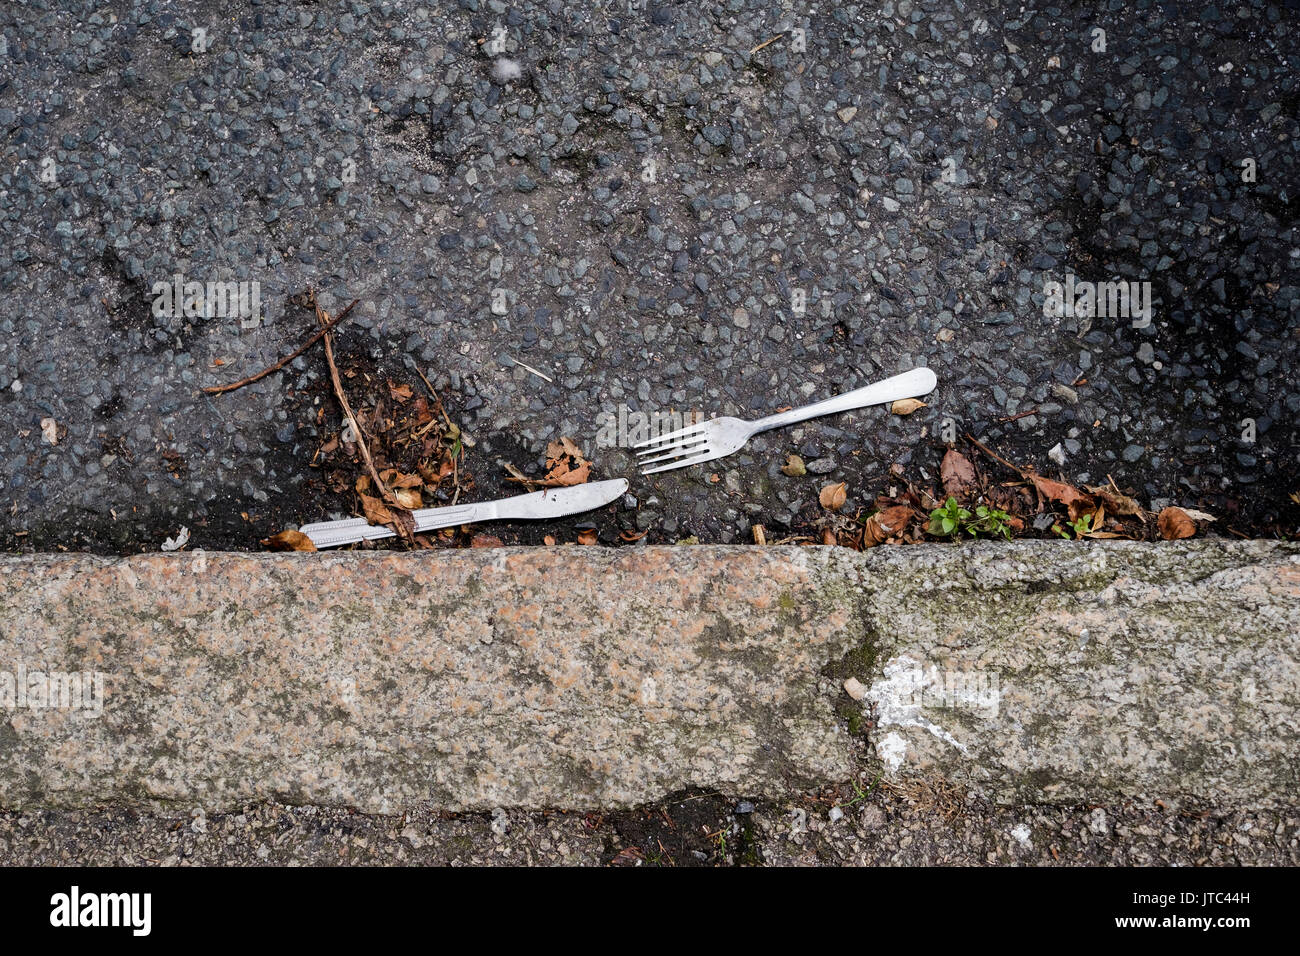 Knife and fork discarded in the road next to a kerb - Stock Image